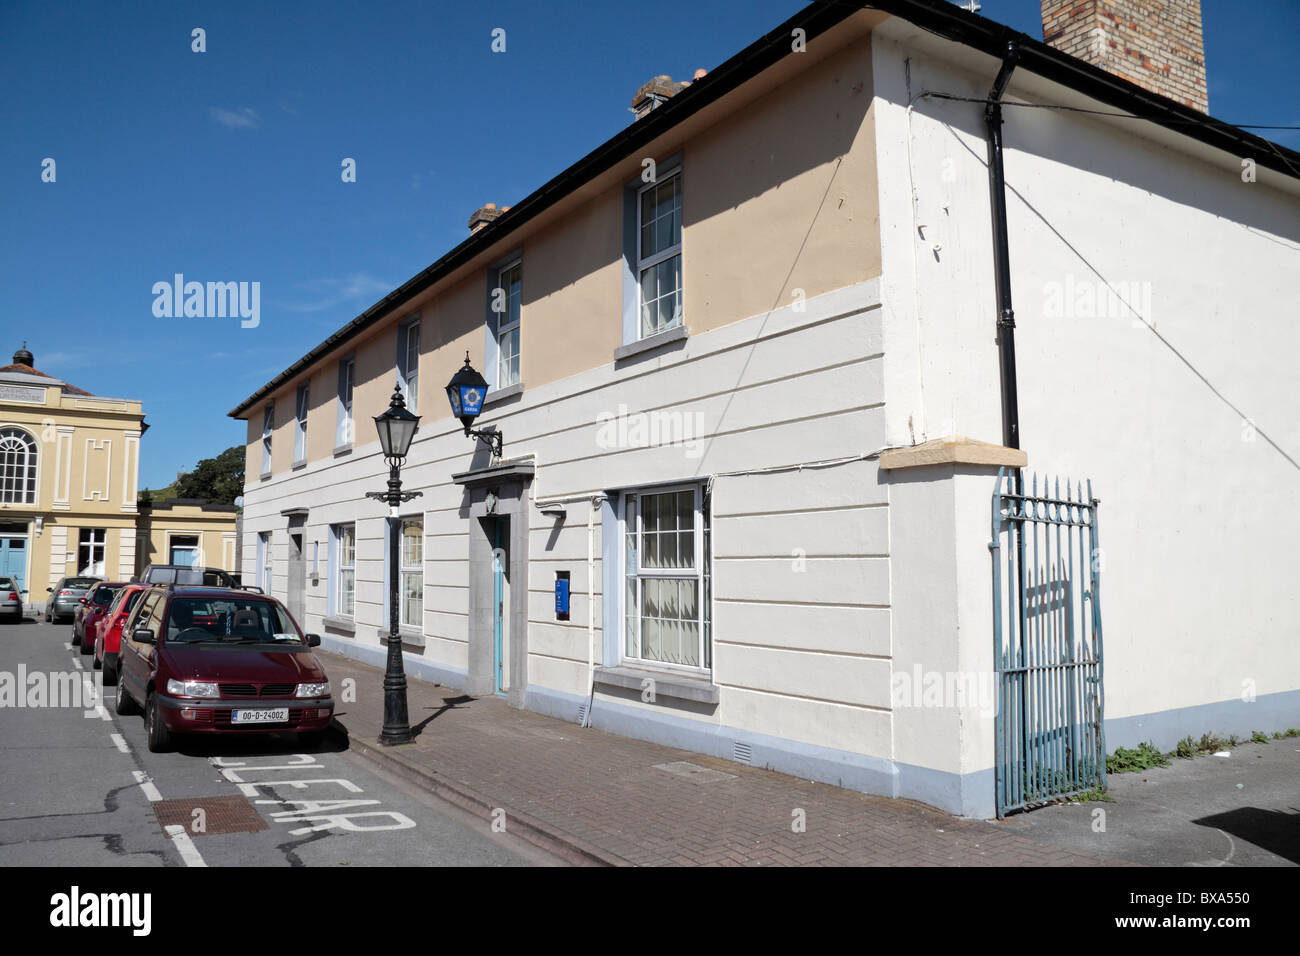 The Garda (Police) station in Cashel, Co. Tipperary Ireland, (Eire) - Stock Image